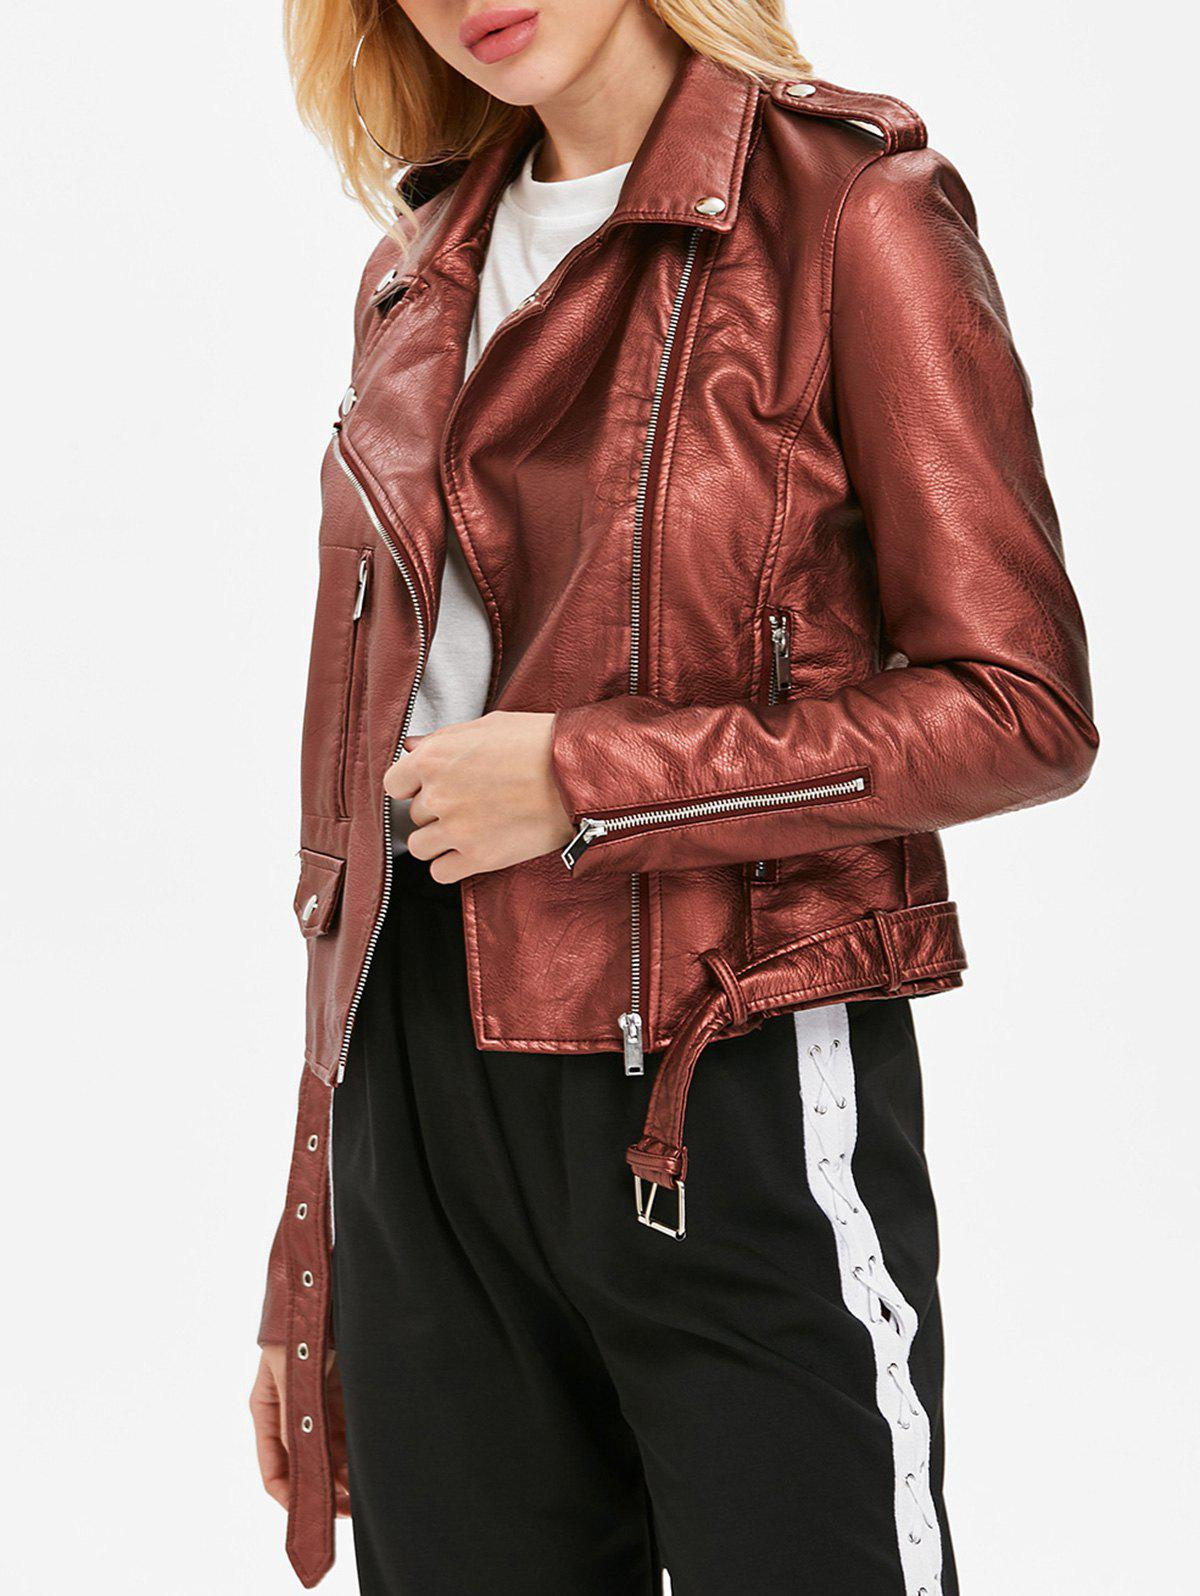 Store Zip Up Belted Waist Jacket